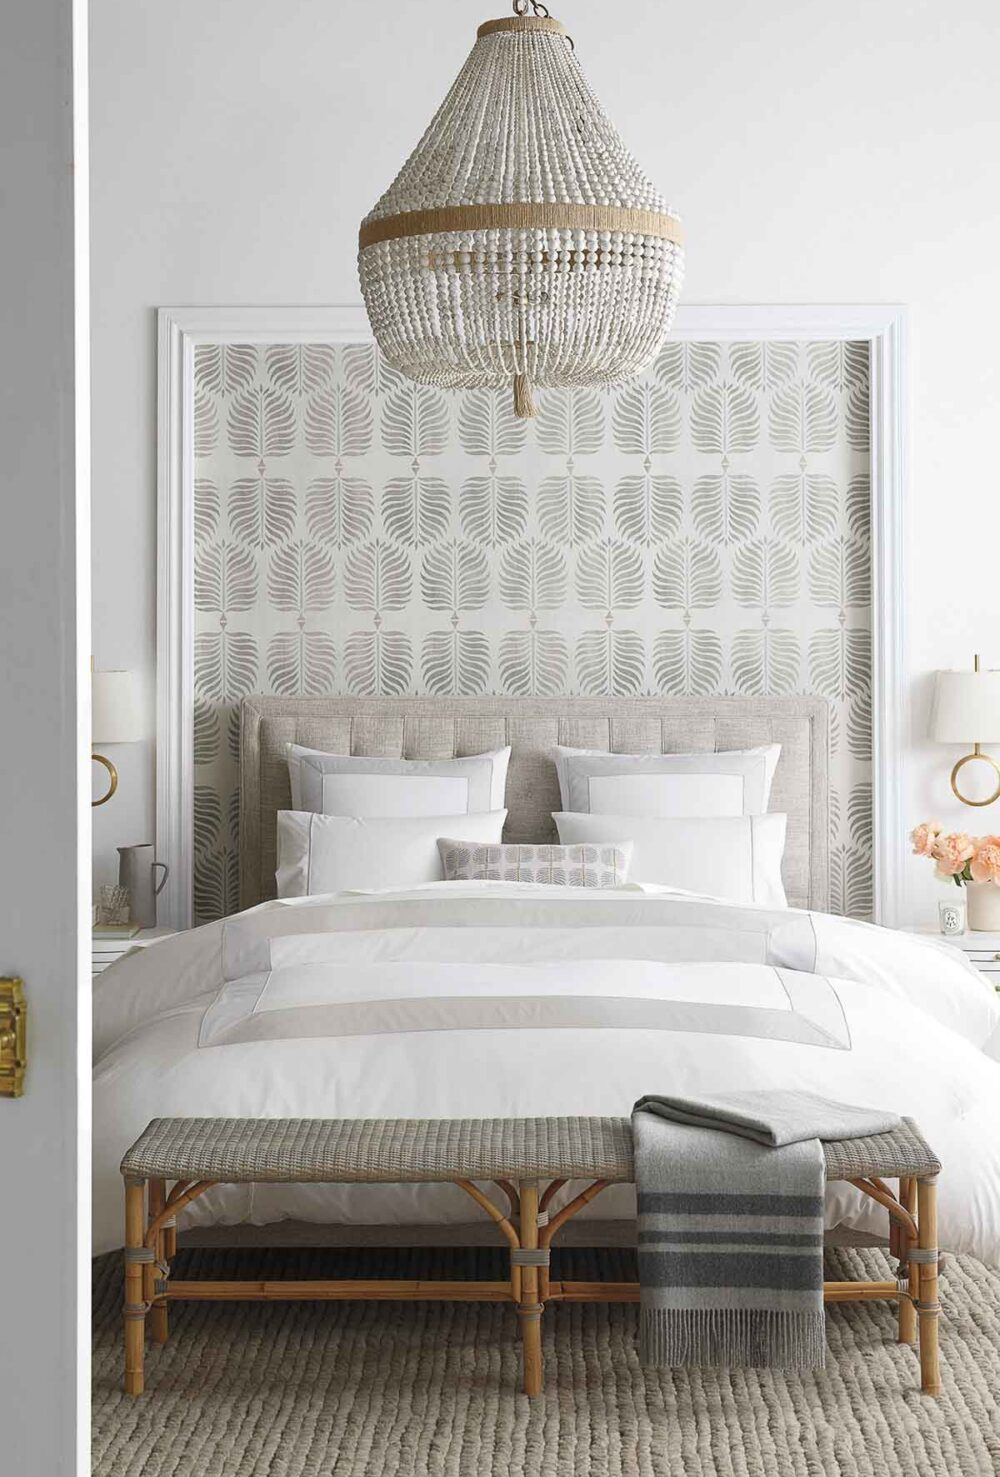 10 unique wallpaper ideas to inspire your next home project!